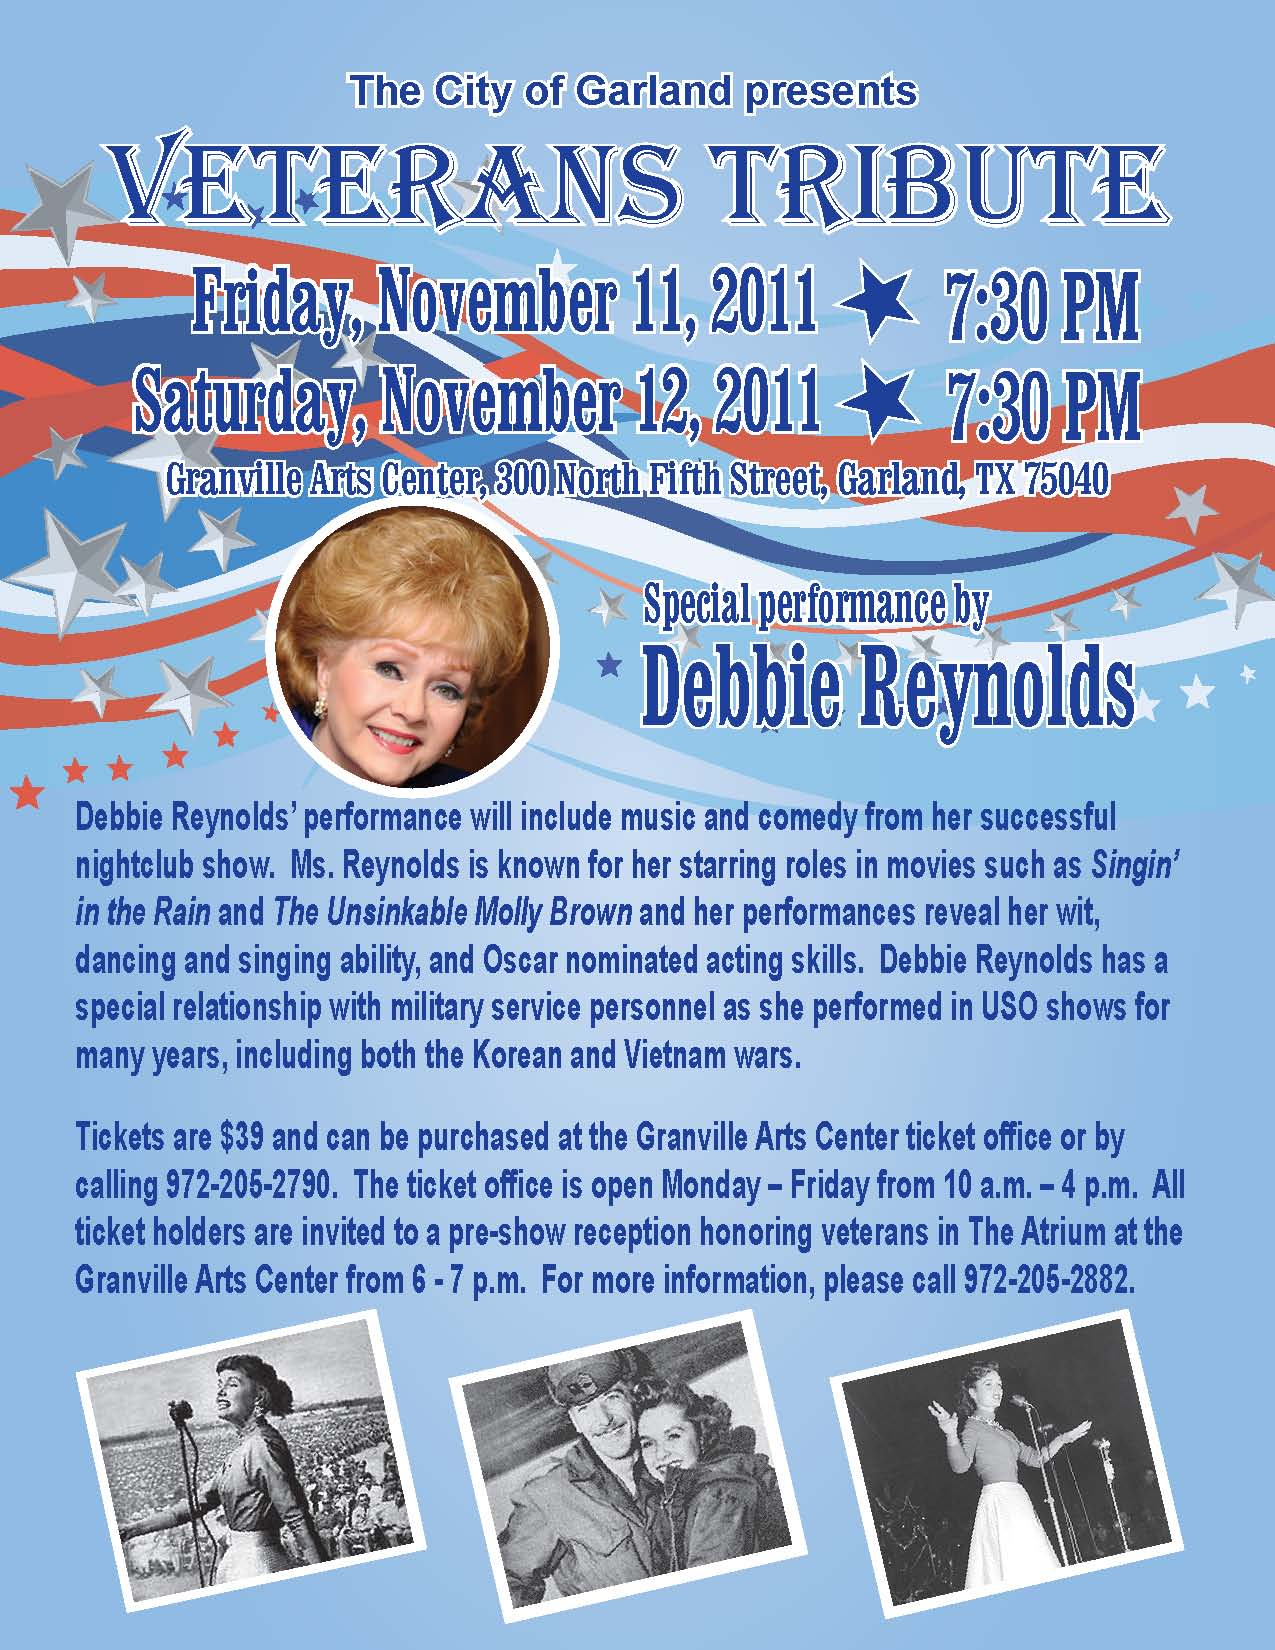 Tribute honors WWII vets, features Debbie Reynolds